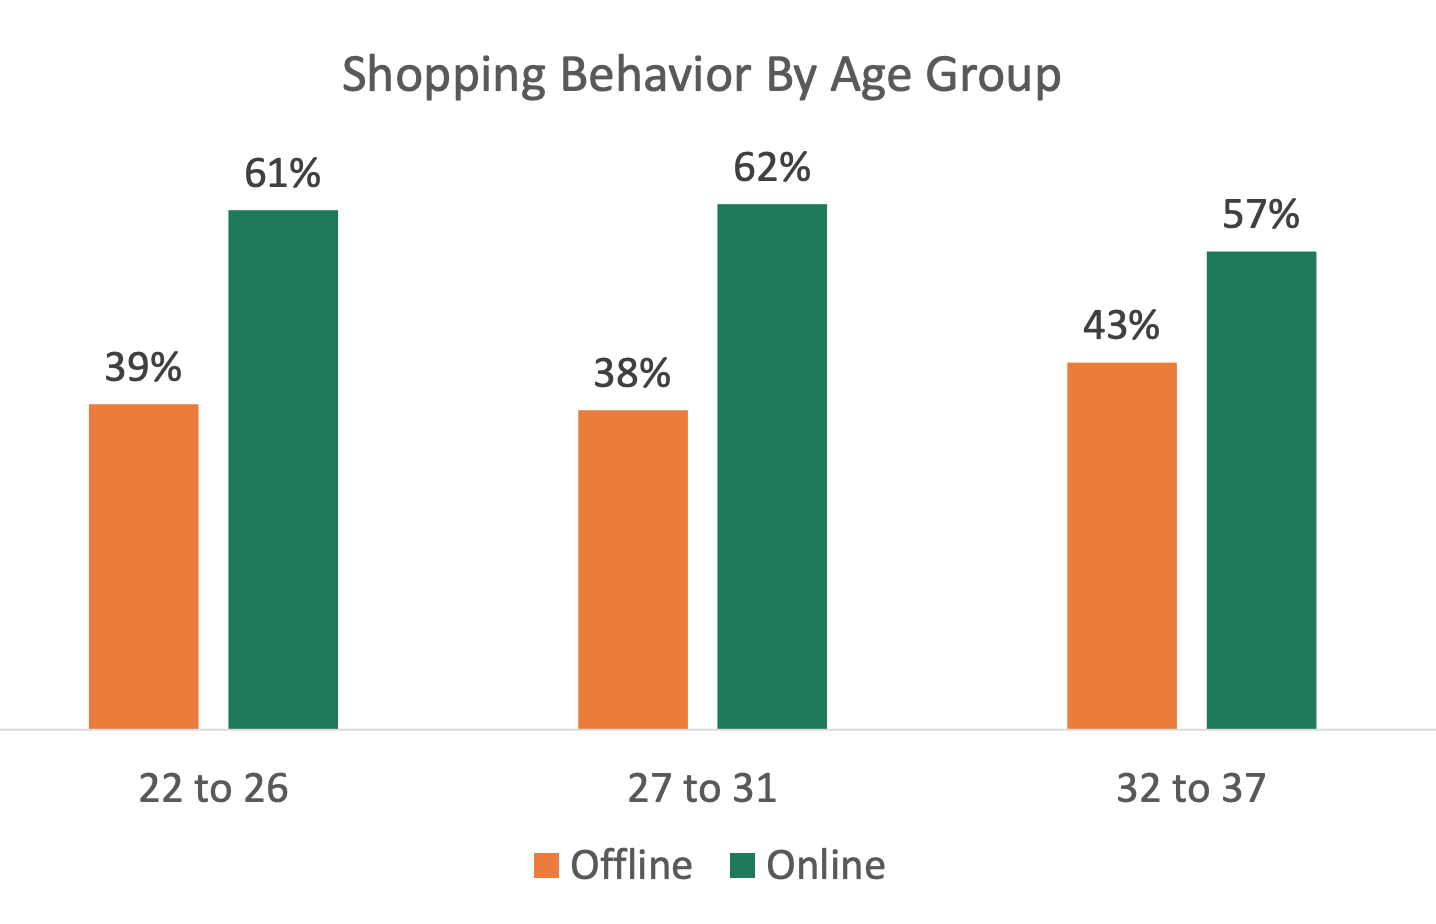 eCommerce that statistics shows online shopping is popular in all Millennial age groups